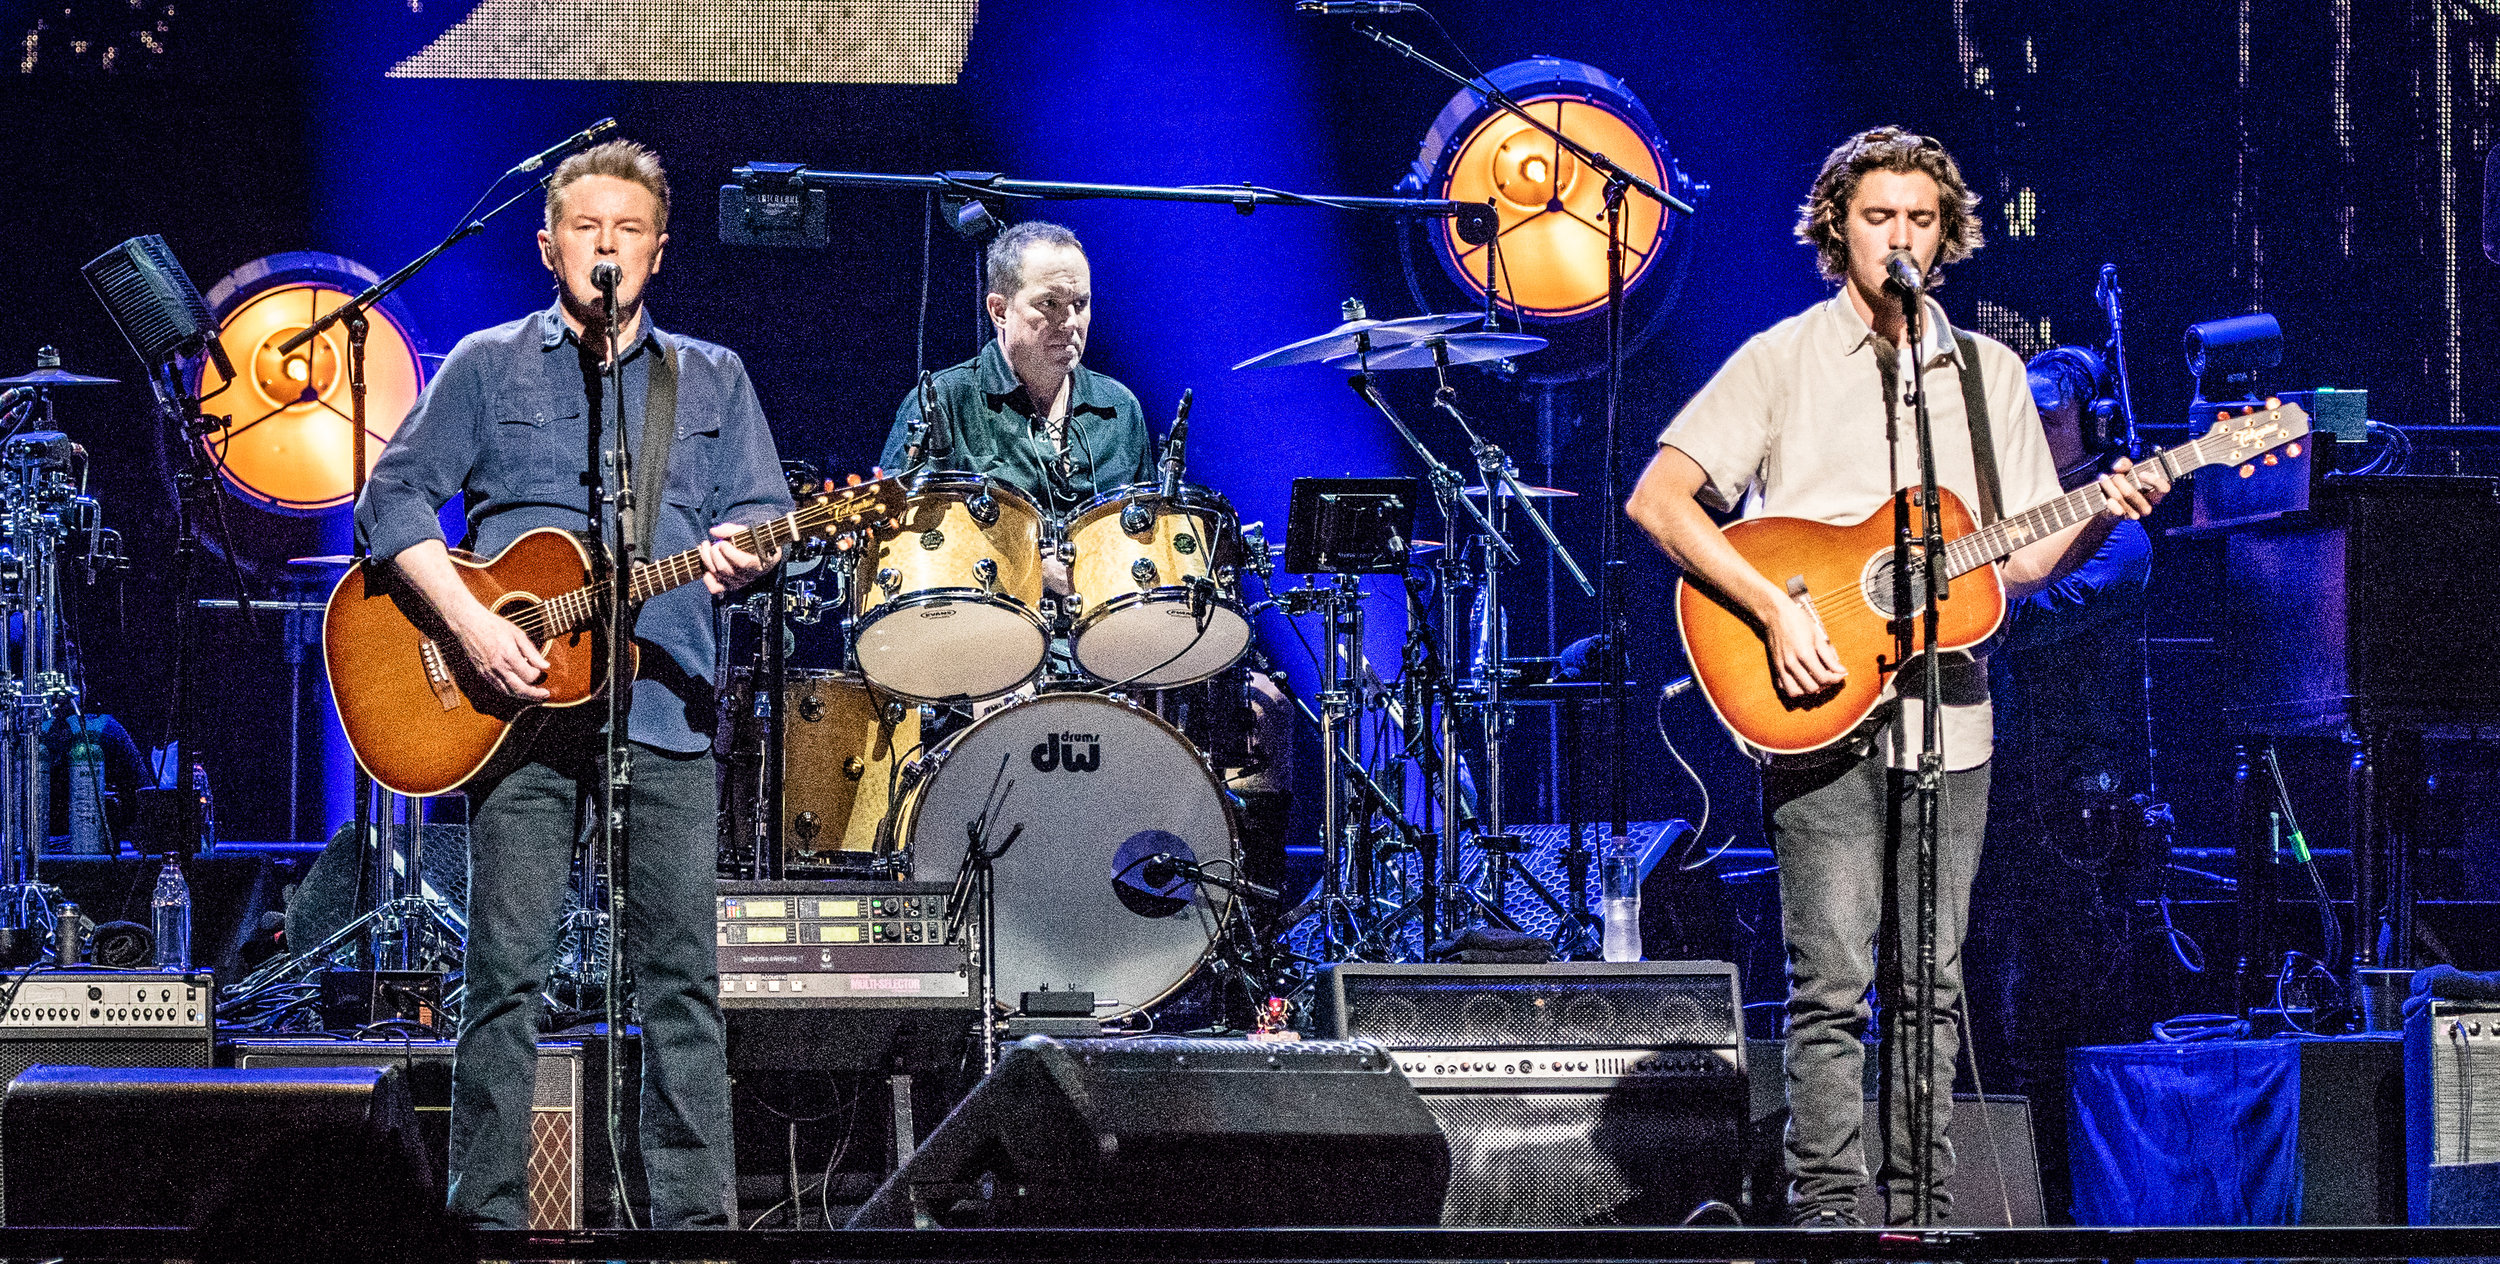 EAGLES PERFORMING AT GLASGOW'S SSE HYDRO - 04.07.2019  PICTURE BY: CALUM BUCHAN PHOTOGRAPHY